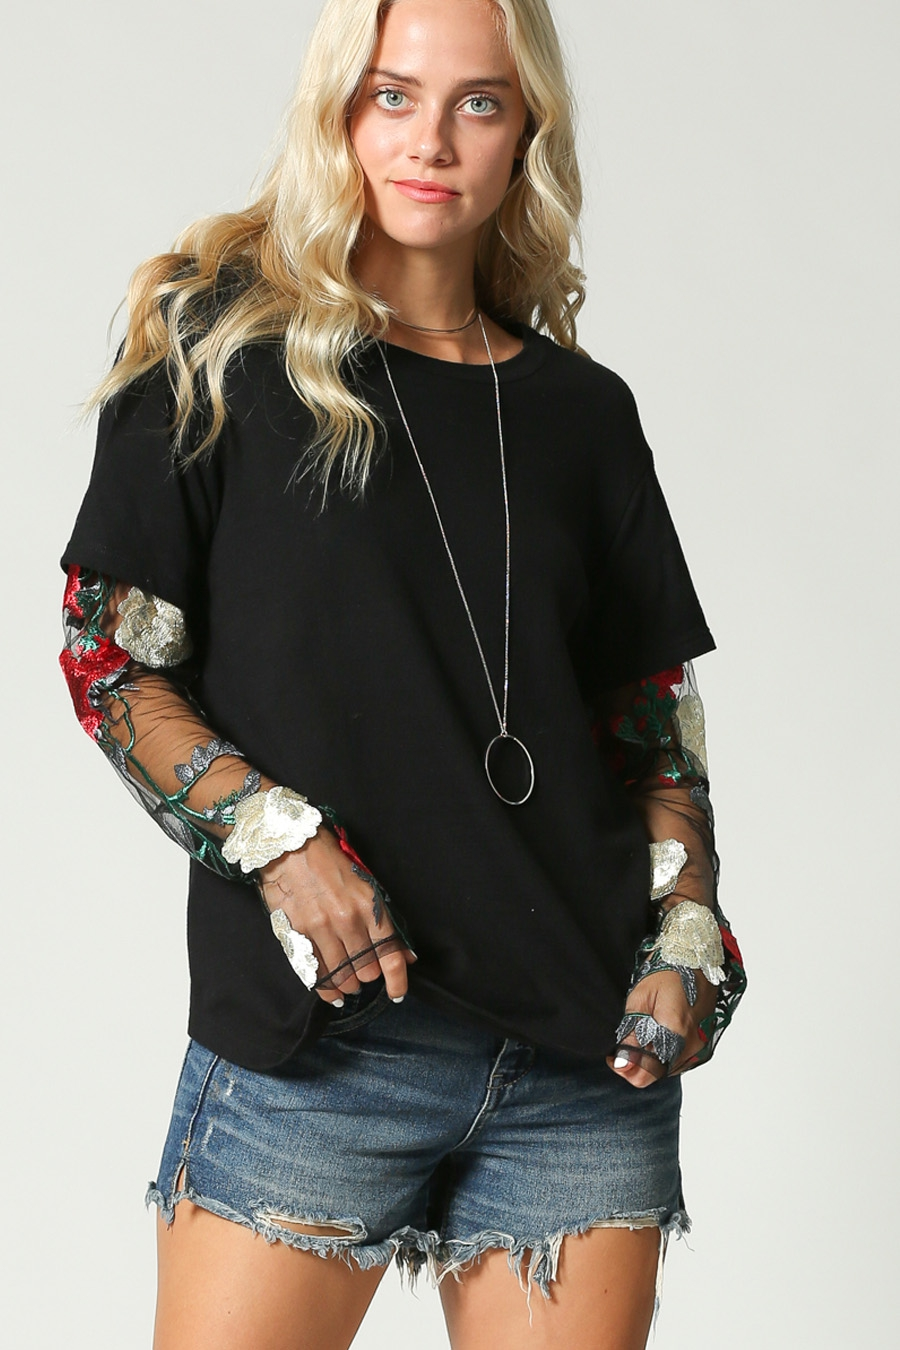 EMBROIDERED FLORAL LACE SLEEVES TOP - orangeshine.com